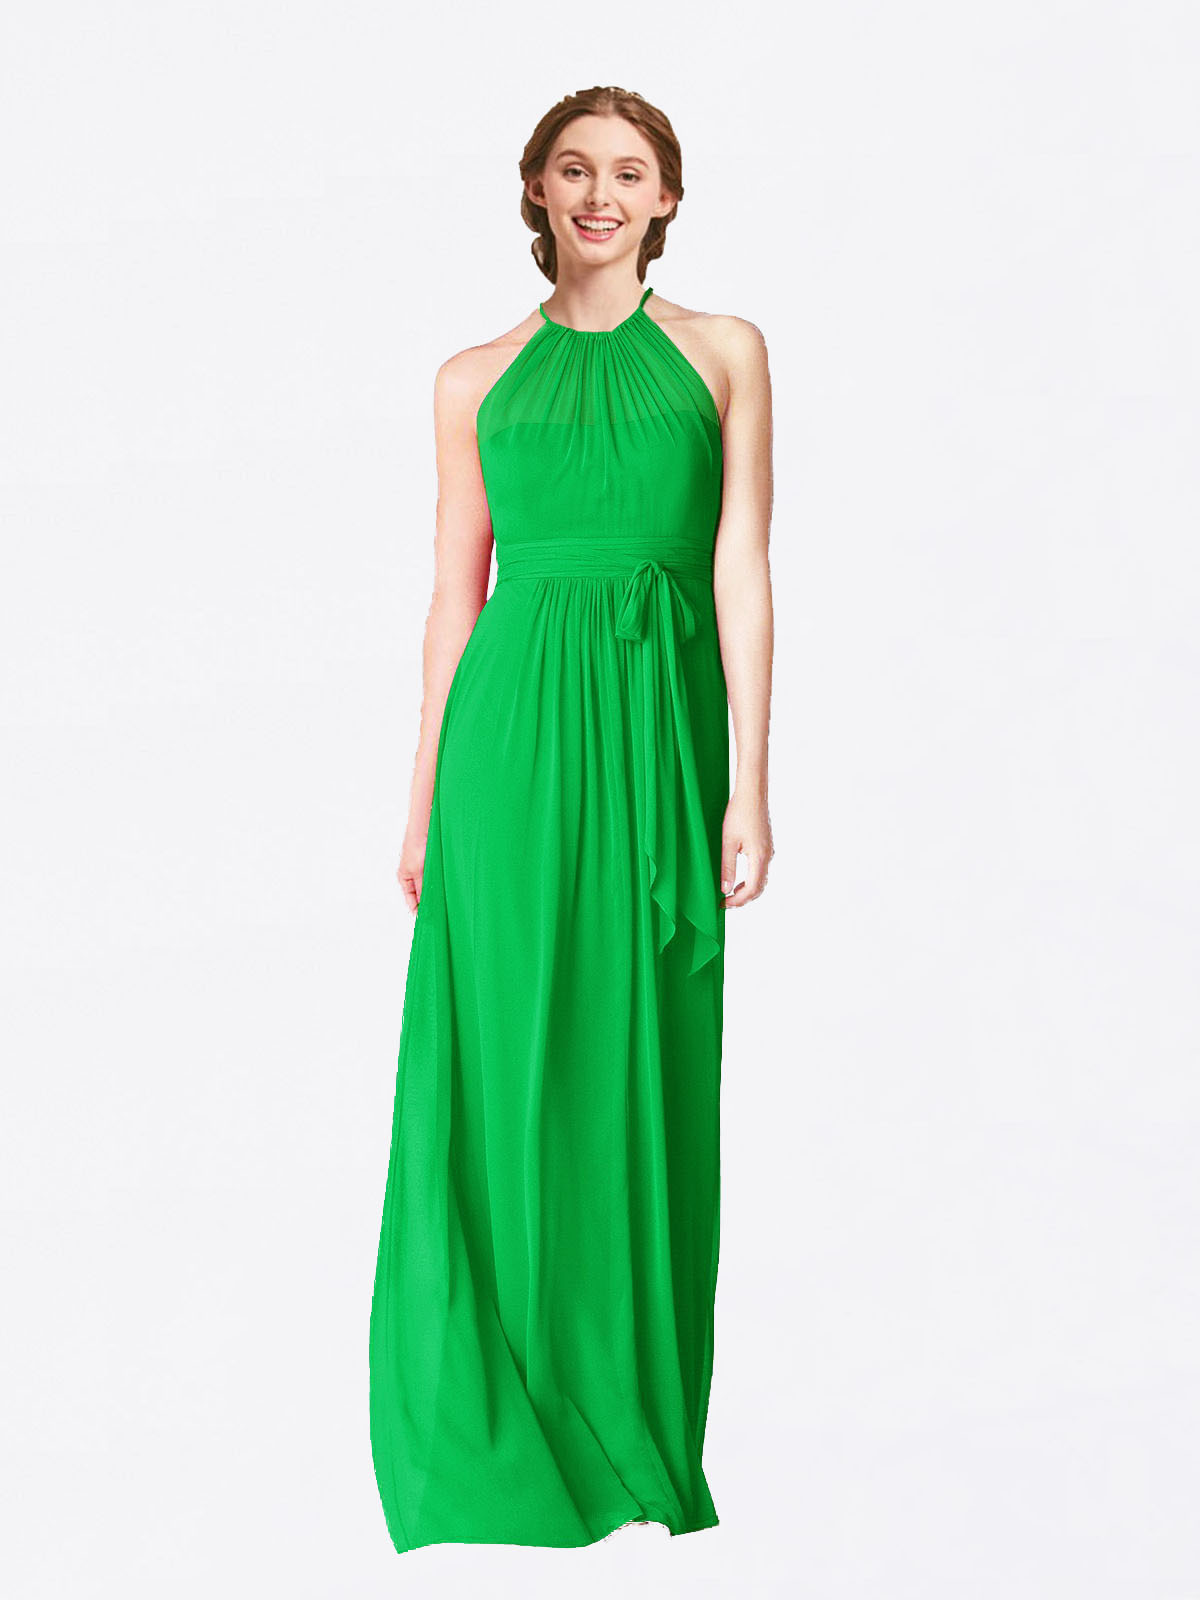 Long A-Line Halter Sleeveless Green Chiffon Bridesmaid Dress Laura